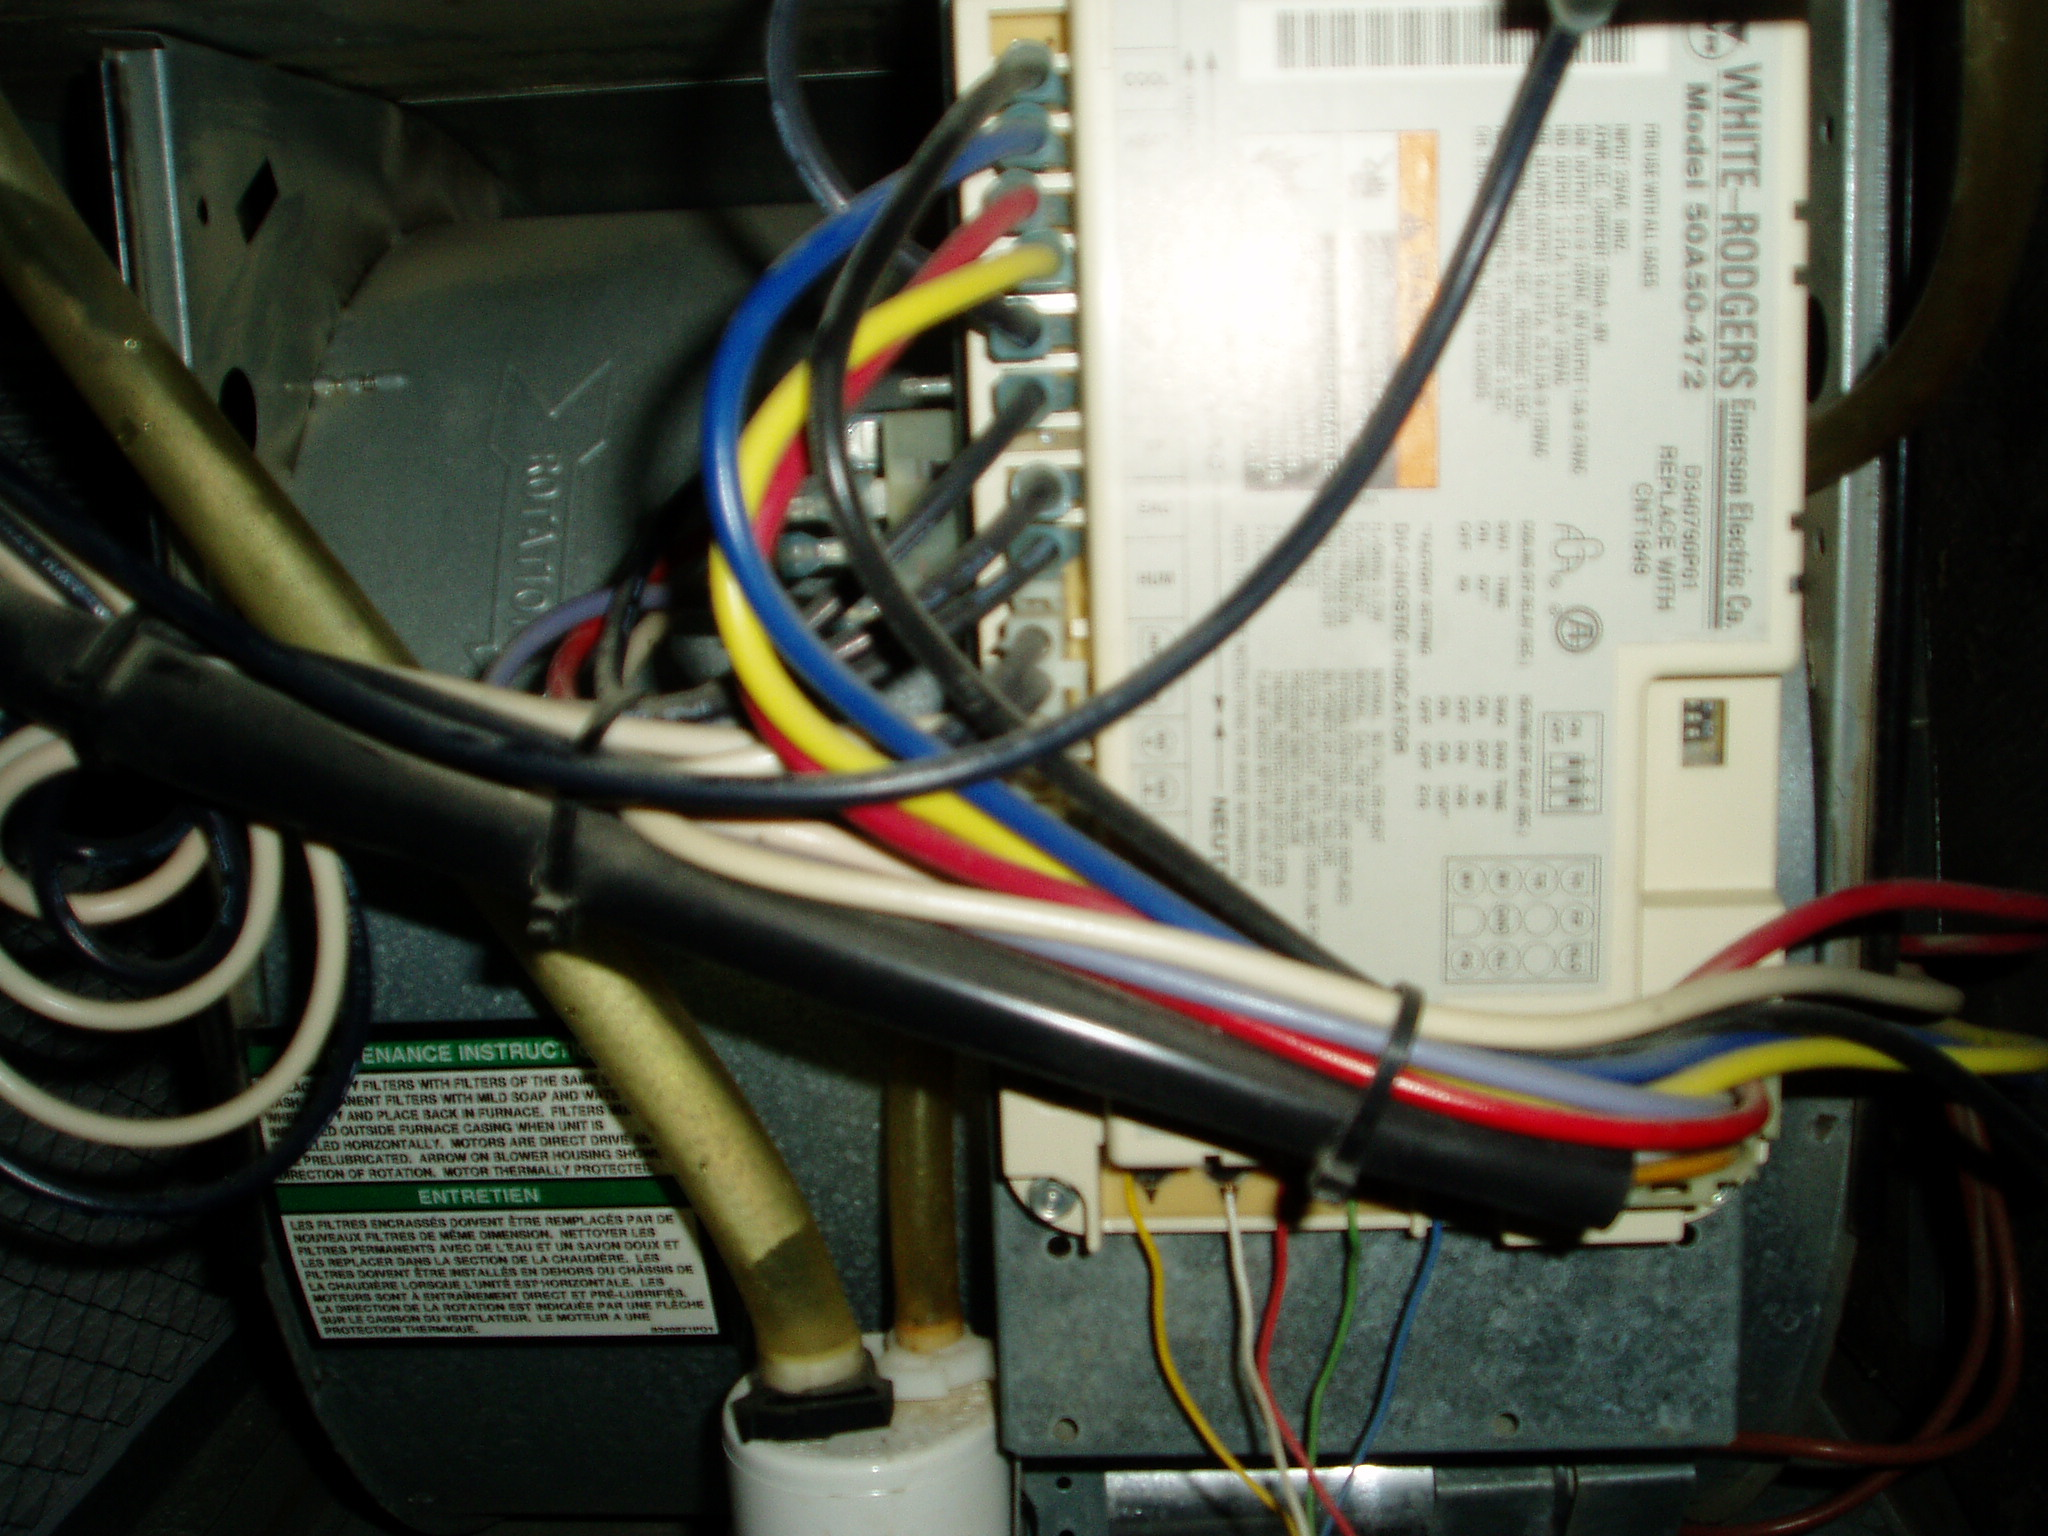 Furnace Wiring Diagram Together With Nordyne Furnace Wiring Diagram